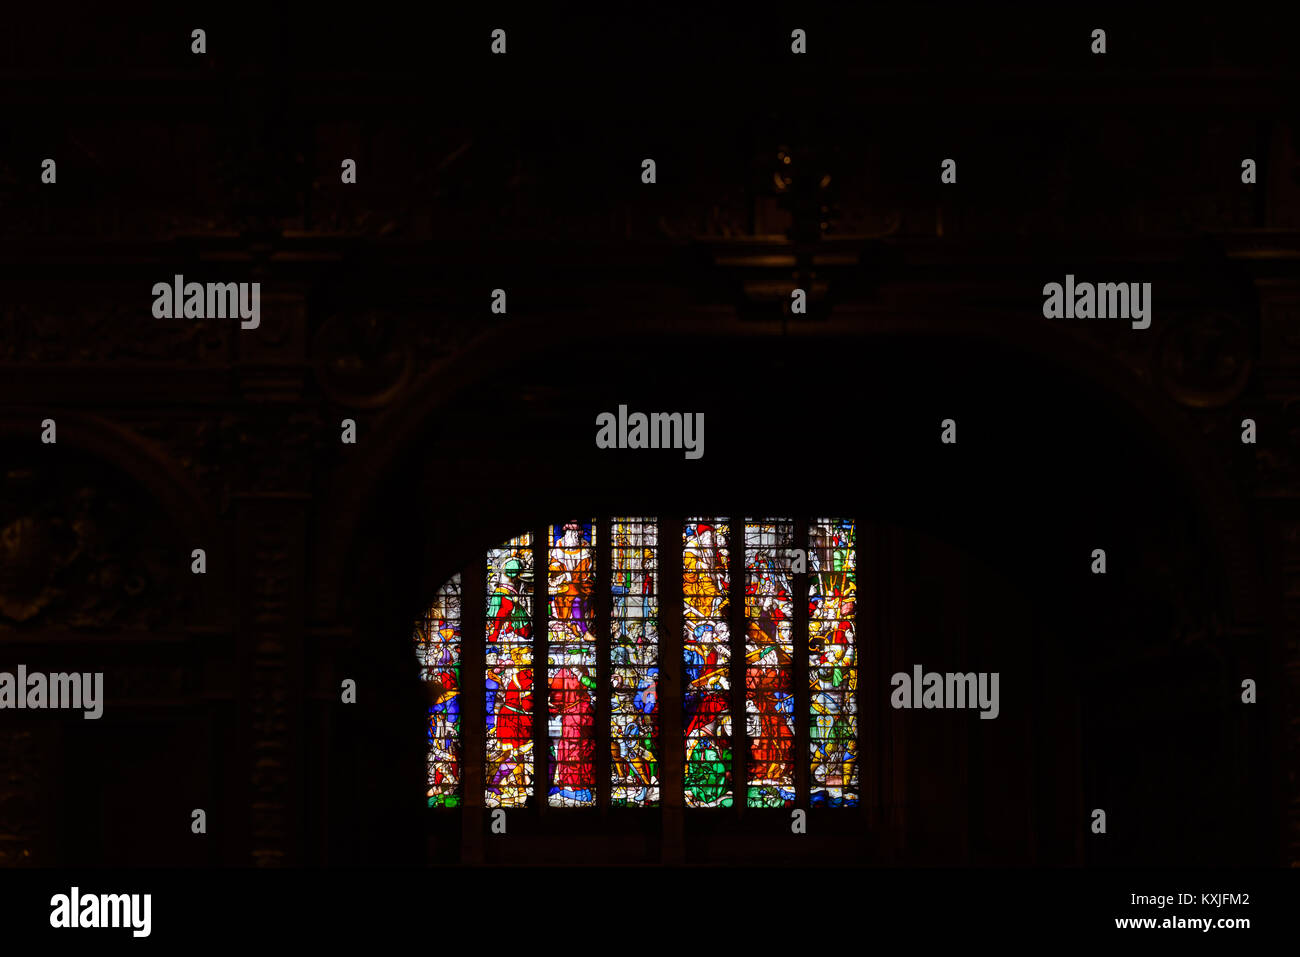 Stained glass window, illustrating the suffering and death of Jesus Christ, as seen via the rood screen in the chapel - Stock Image